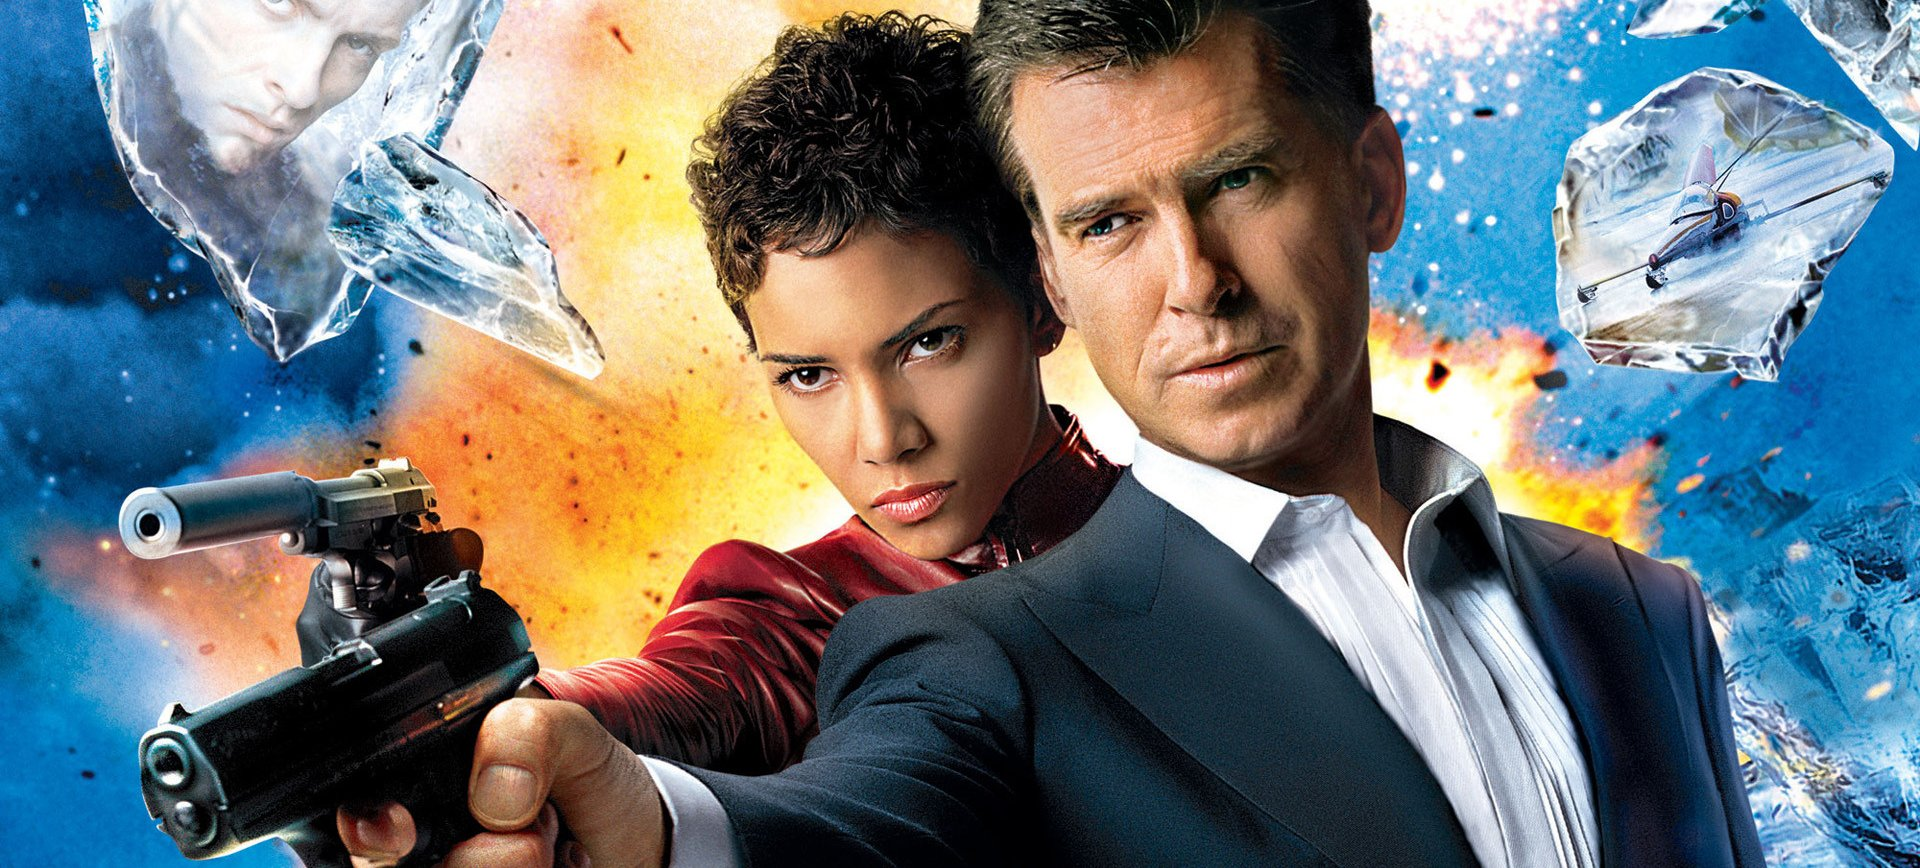 Take 2: Die Another Day feature image